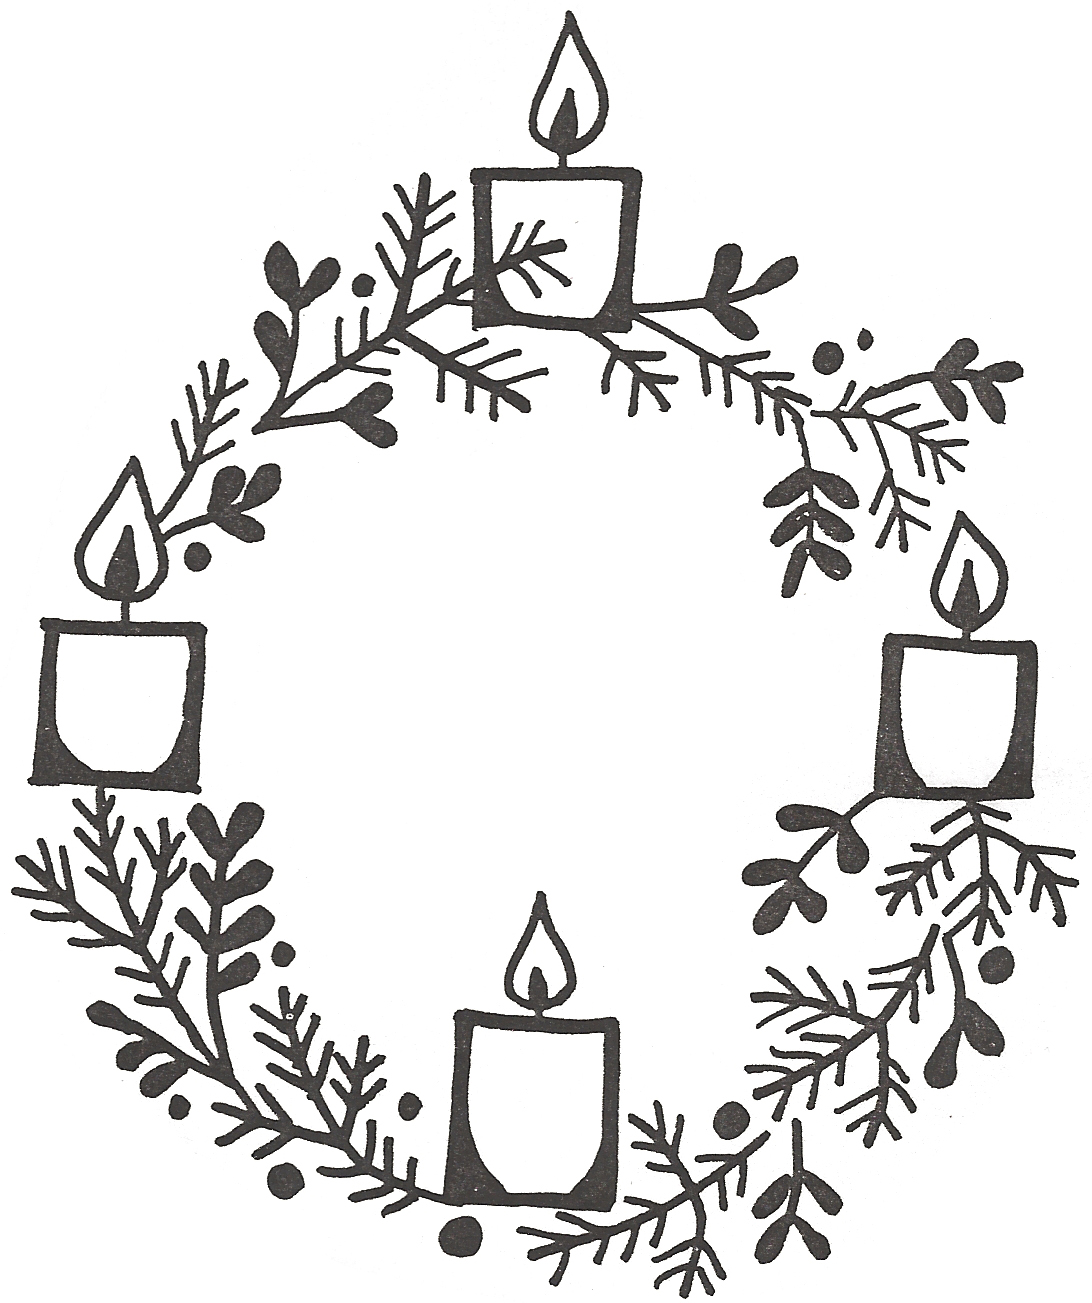 Advent Wreath Black And White Clipart - Clipart Kid